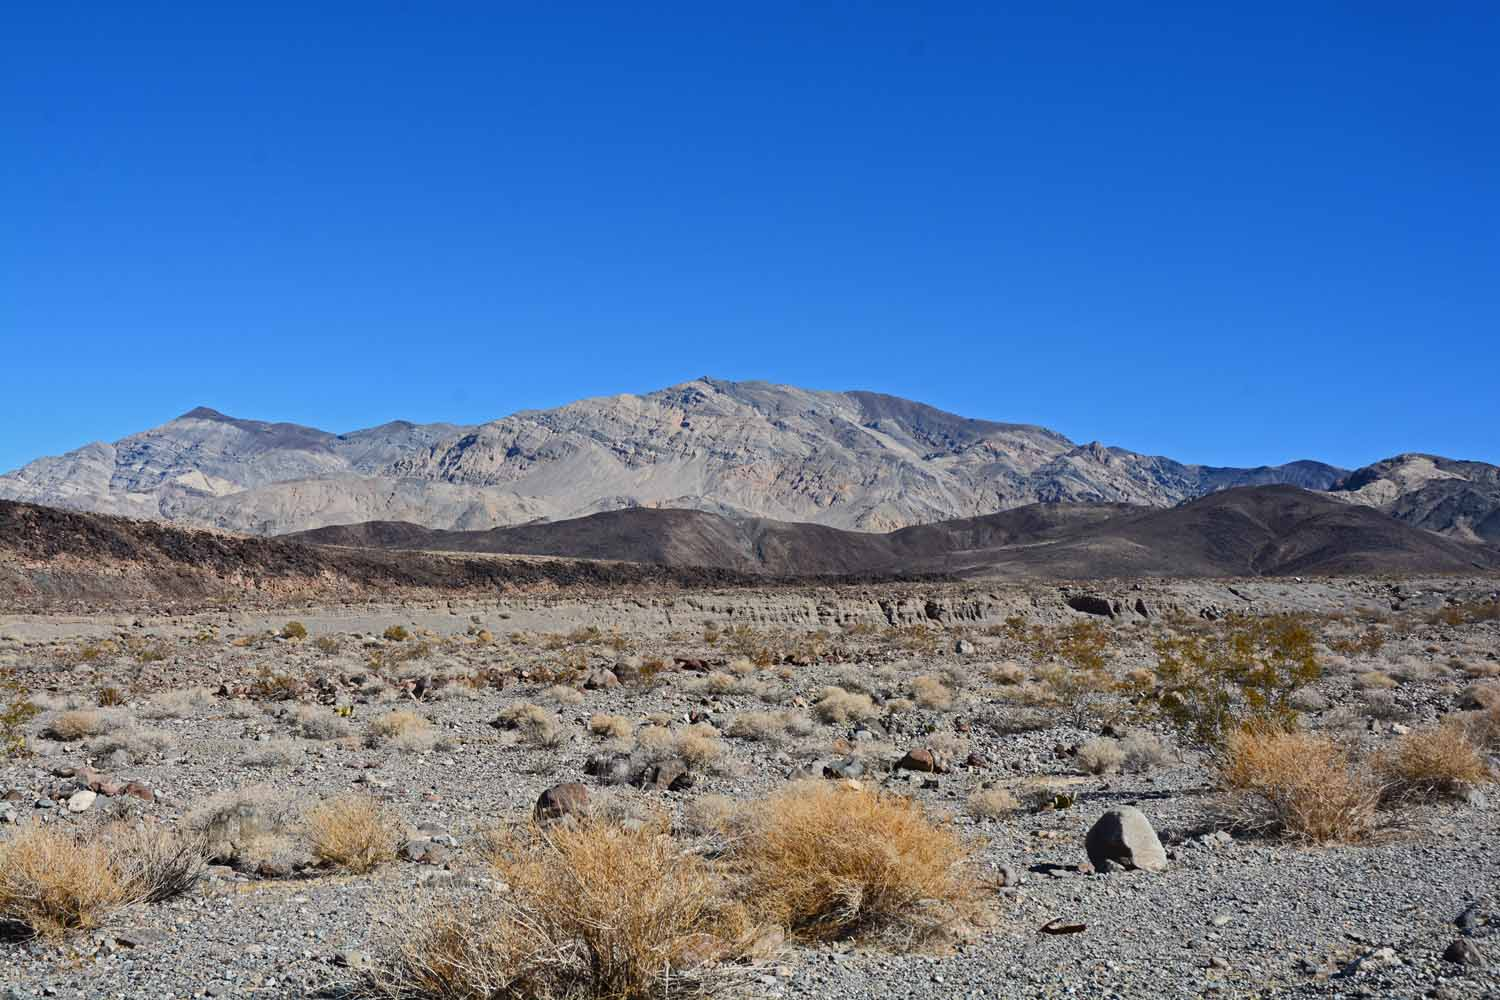 This is generic Death Valley.  Looks dry and desert like.